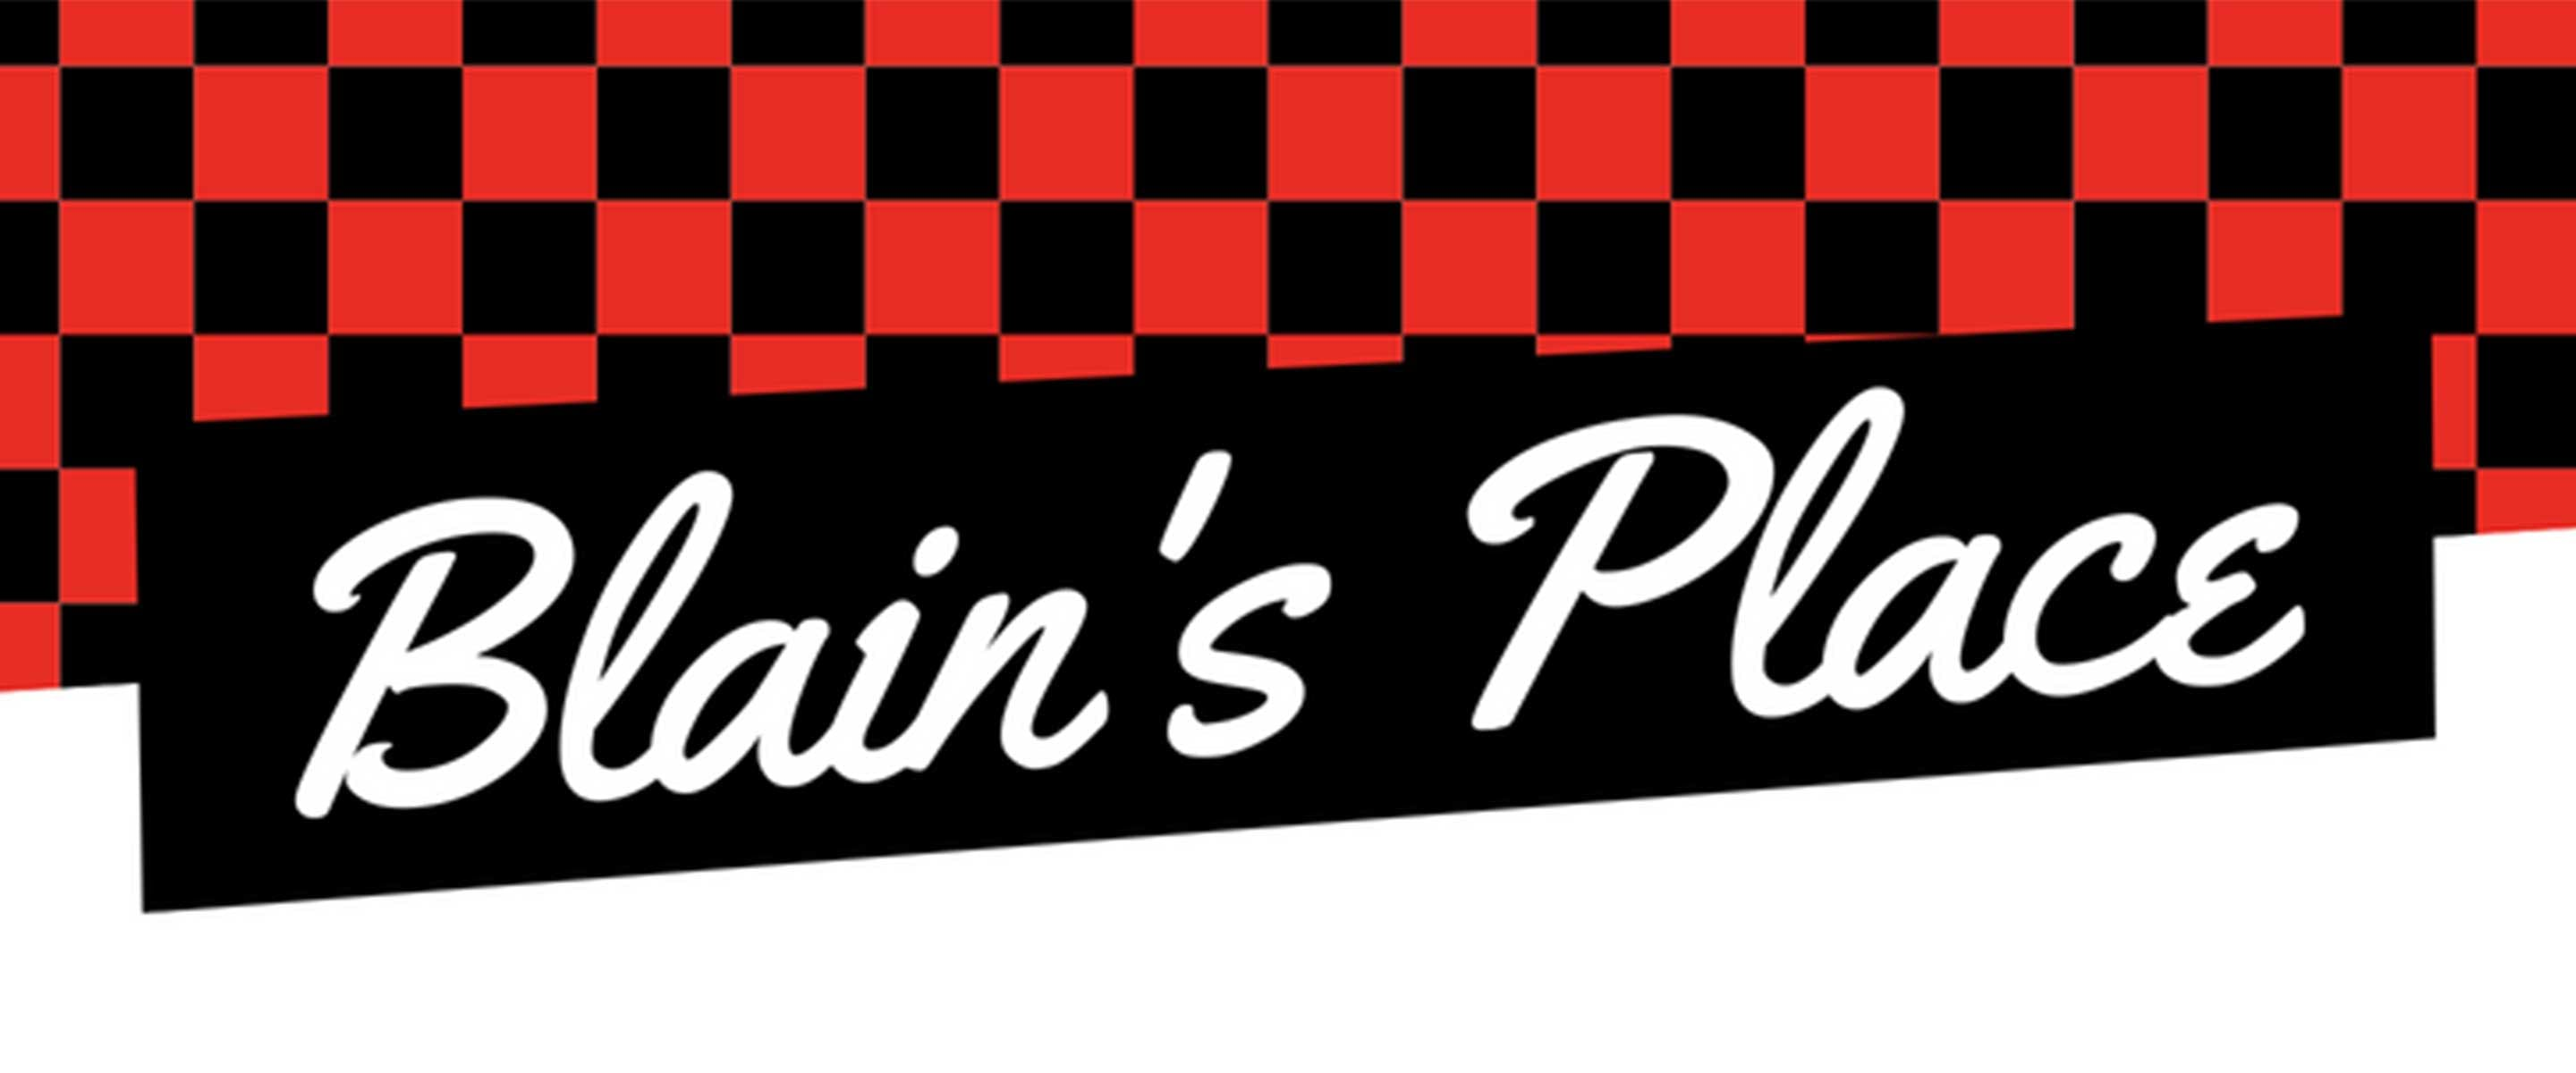 red and black checkered graphic for Blain's Place